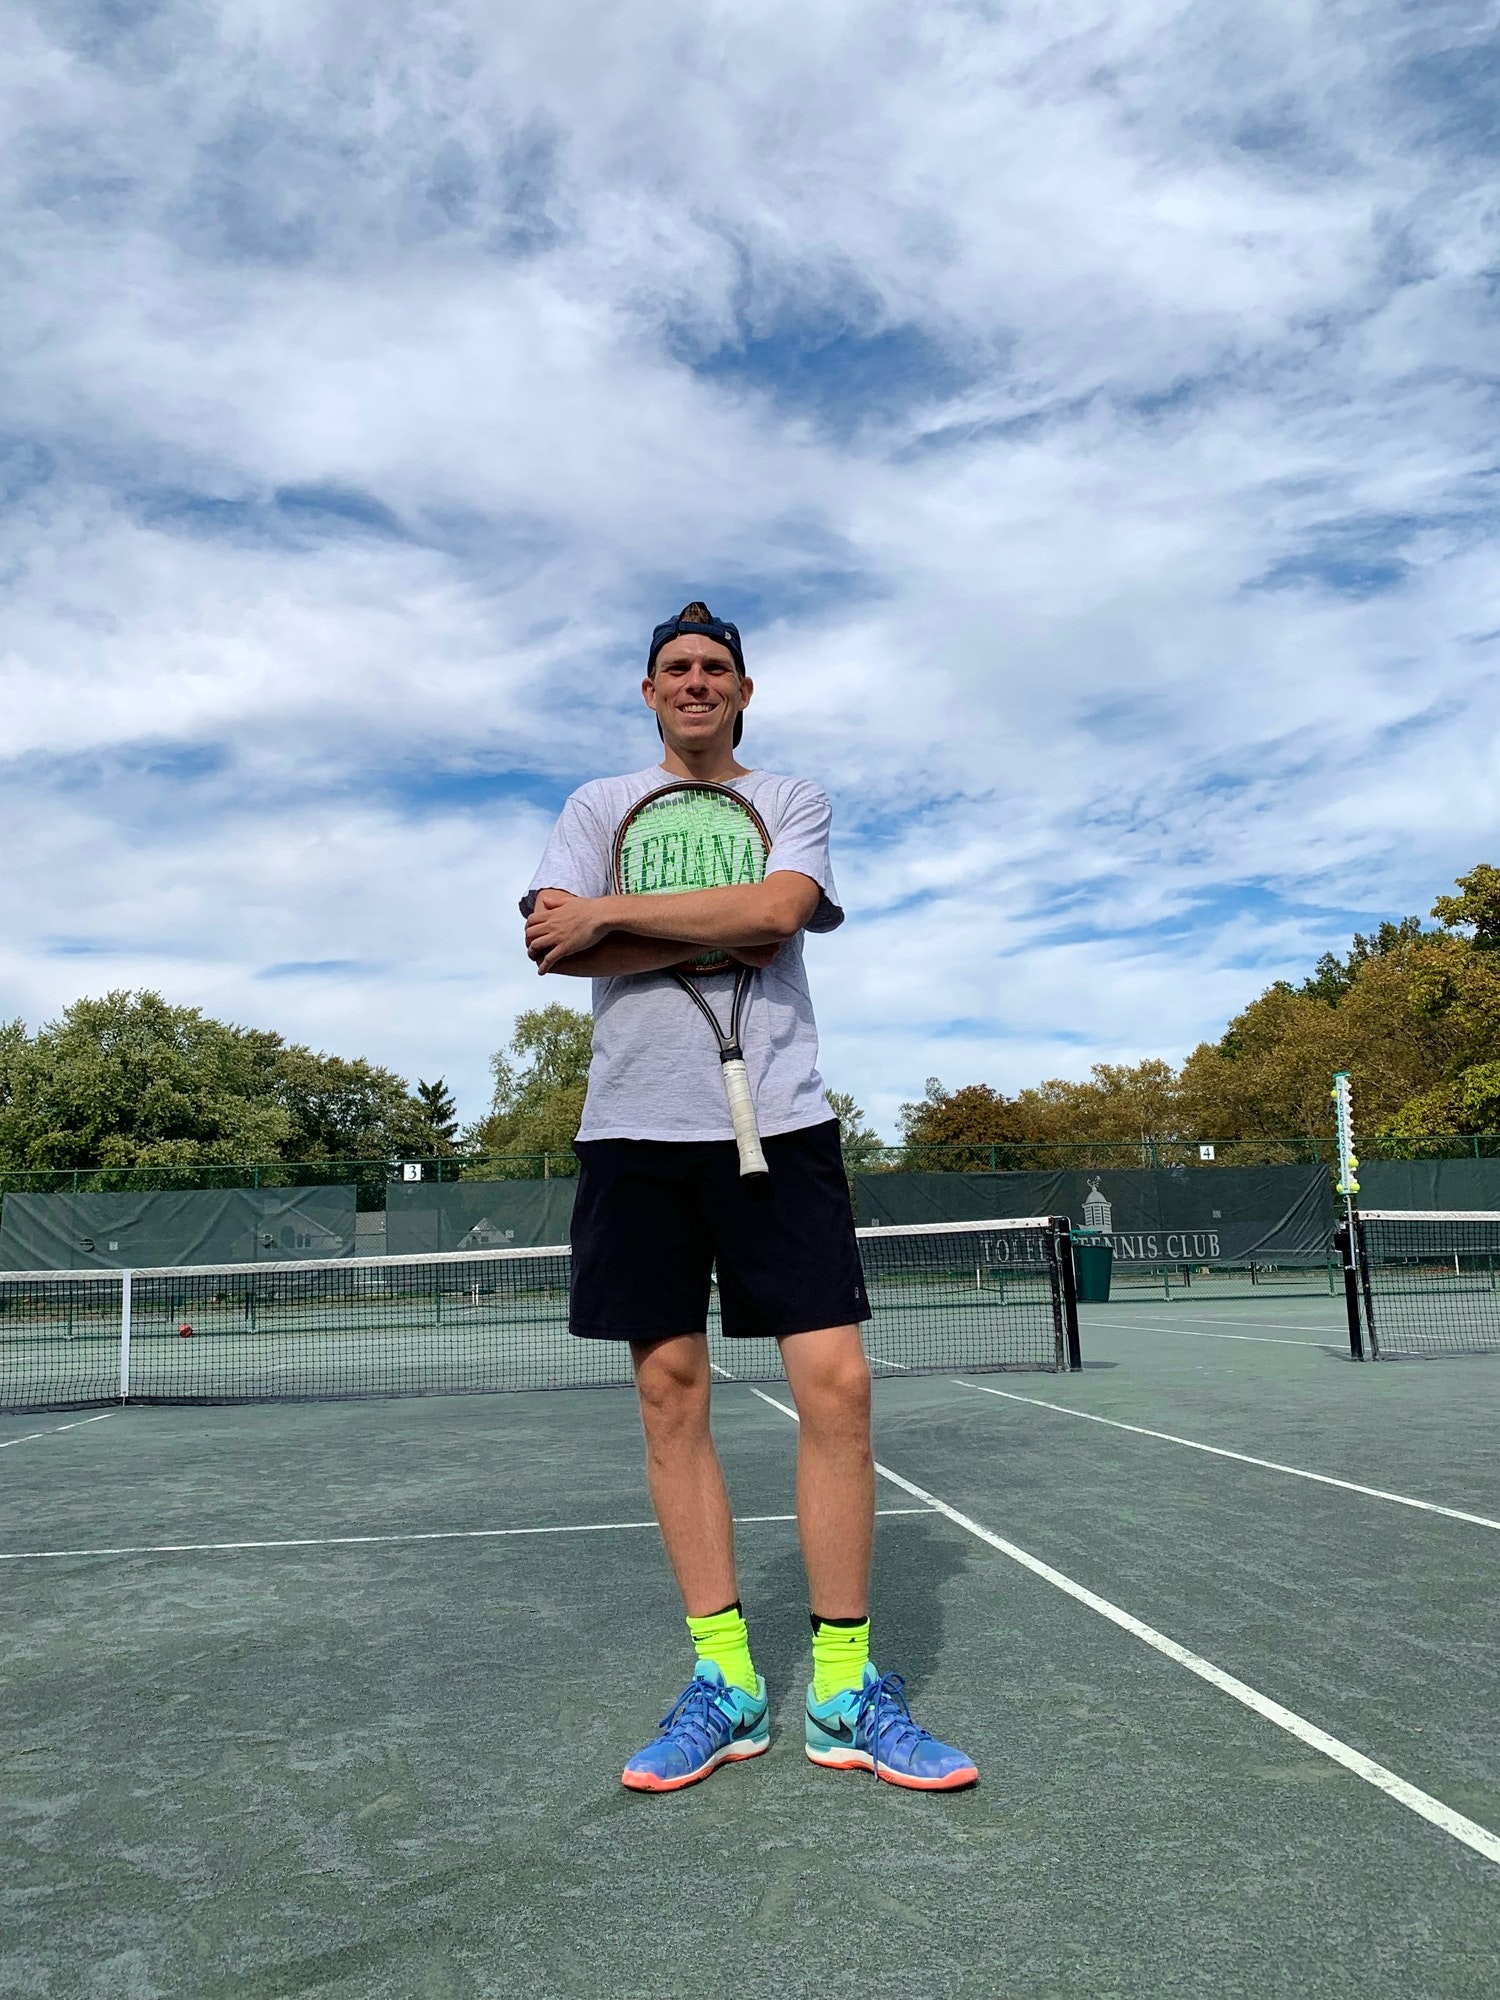 Grant M. teaches tennis lessons in Columbus, OH